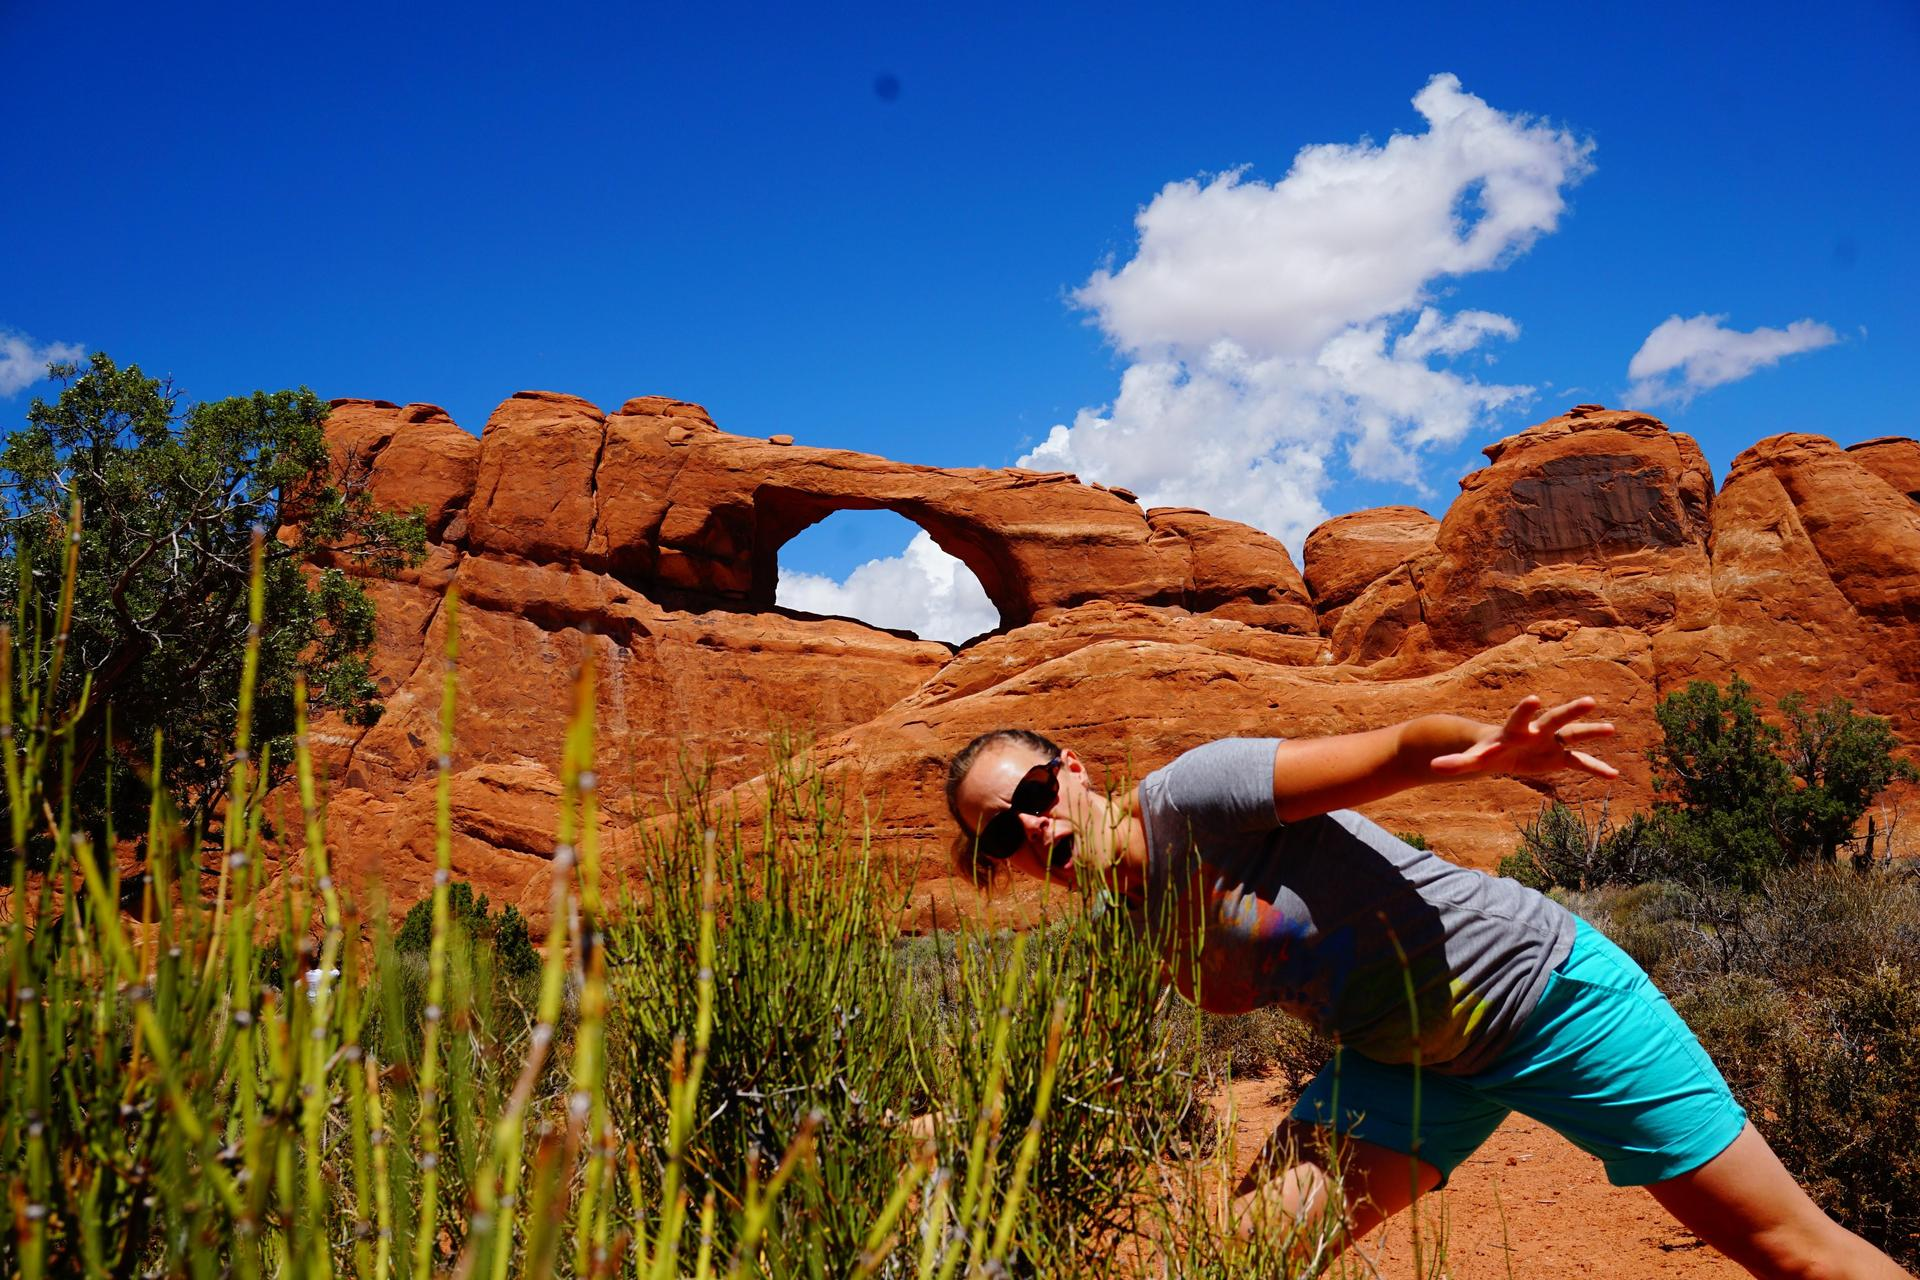 At Arches